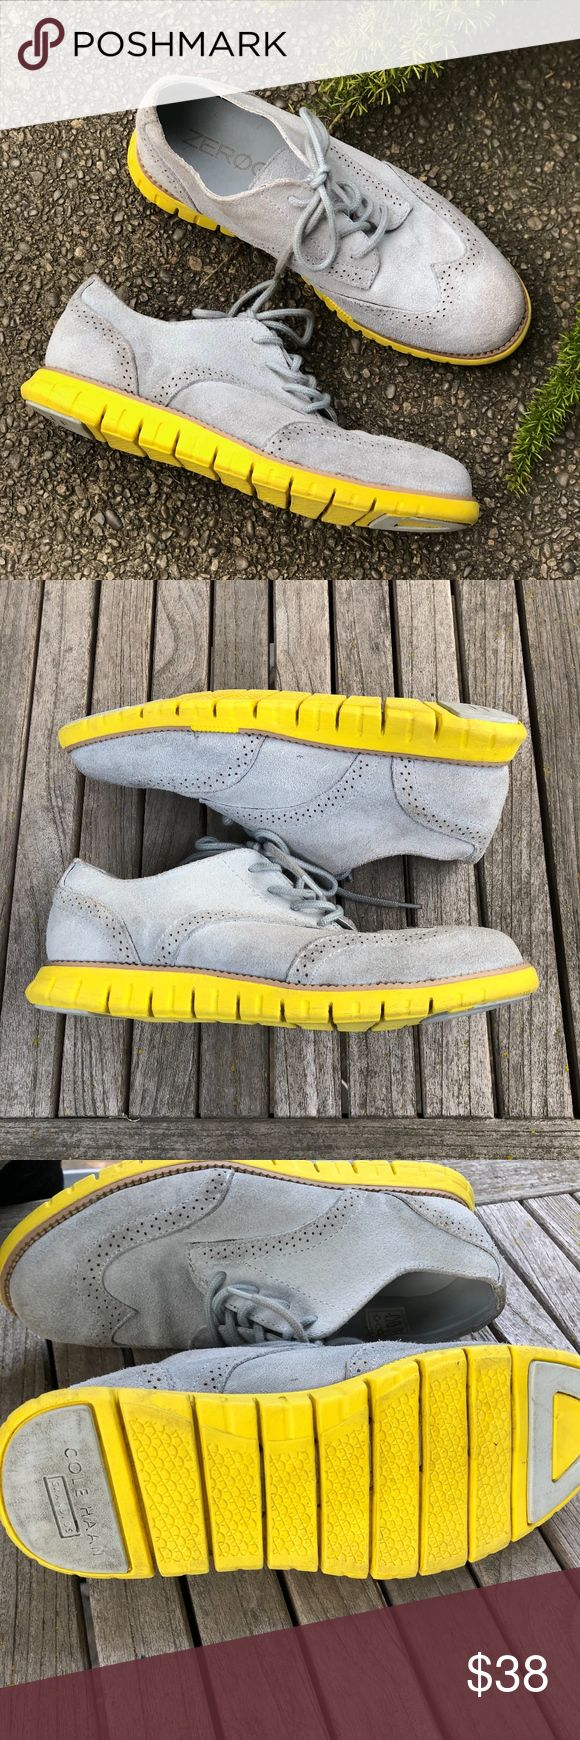 """Cole Haan Zerogrand Gray Suede Wingtip Oxfords These are the coolest shoes for when a boy needs something more than sneakers! Gray Suede Wingtip Oxfords with yellow soles Maker: Cole Haan Zerogrand Listed Size  Boys 6 but could be worn by a woman if you know your size! Approximate measurements : Heel to toe: 11"""" Width at ball of the foot: 4 """"  These have been  worn and show wear on the suede as well as  on the soles- see photos for detail. Overall  good pre-owned  worn used condition and…"""